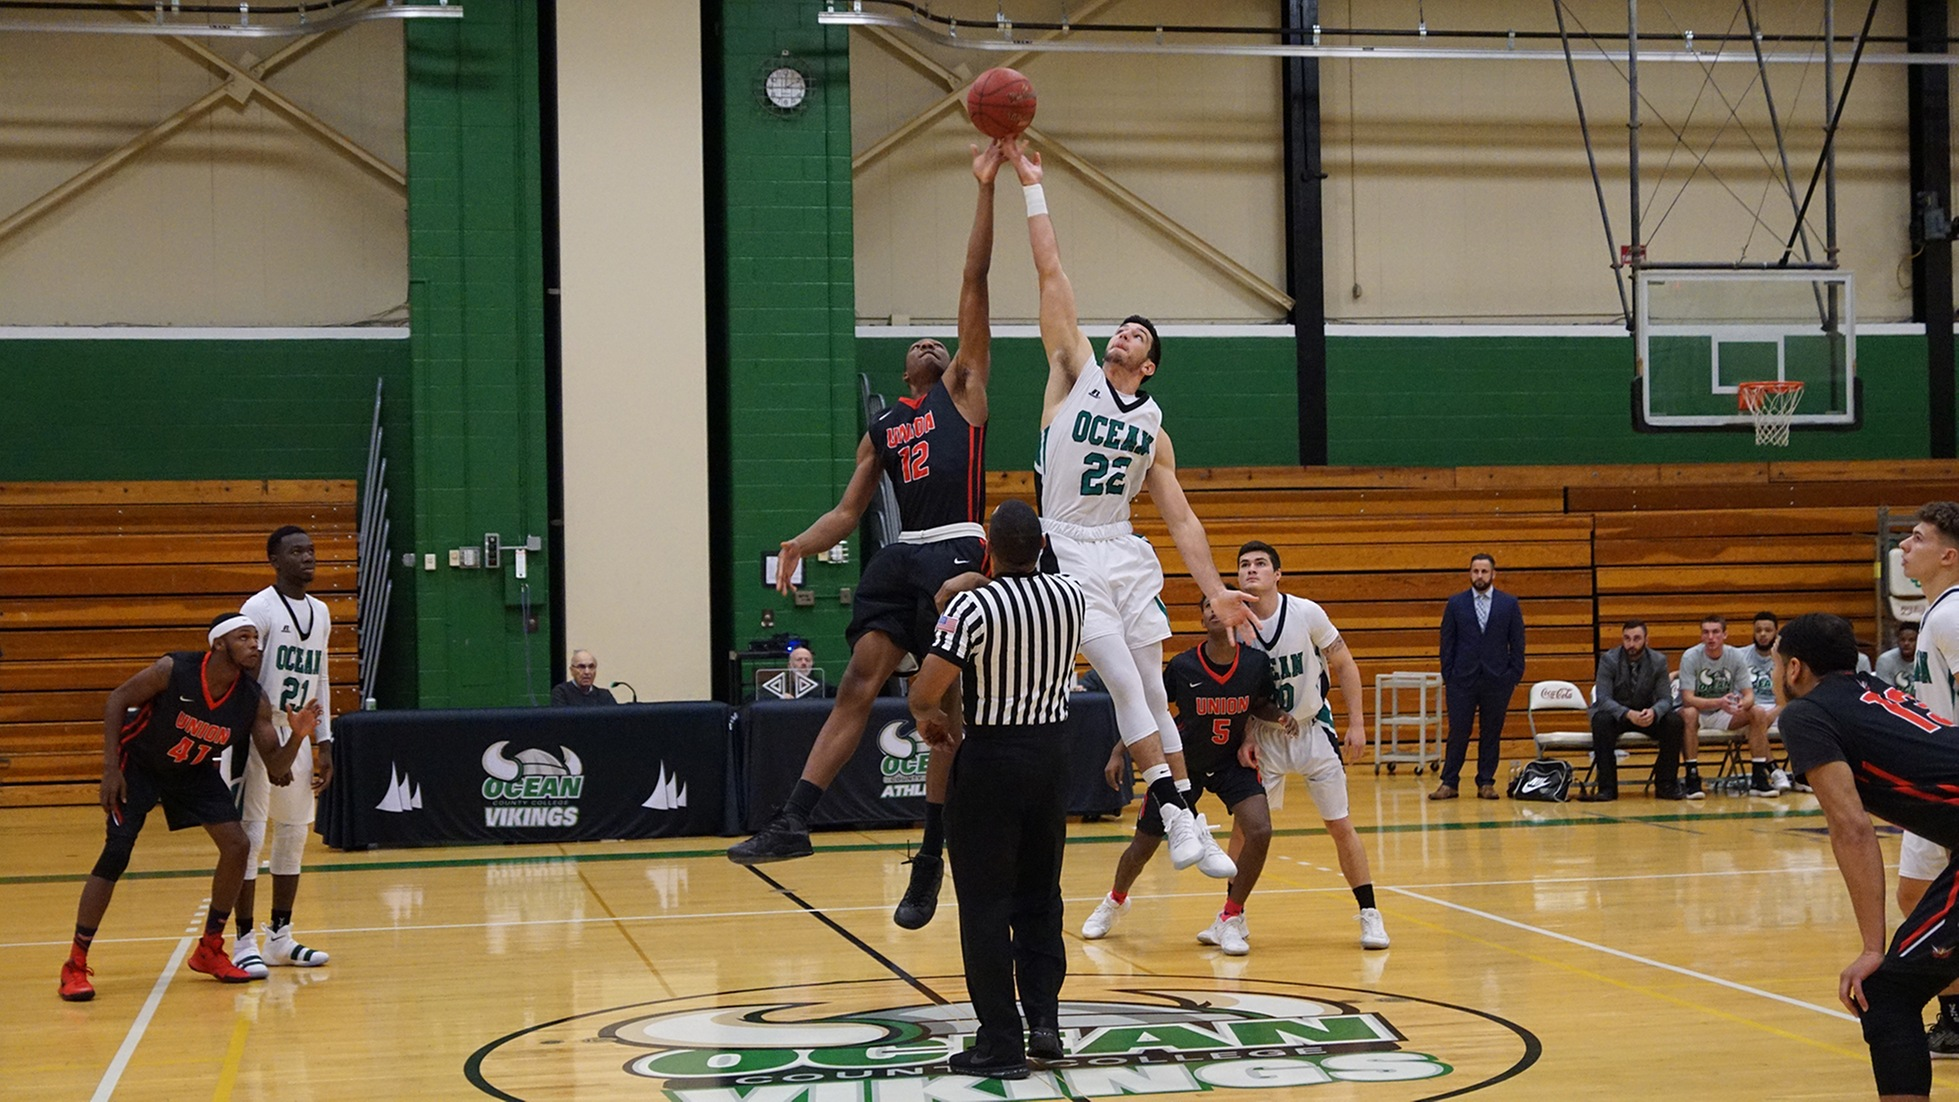 Laing Leads a Thrilling Vikings Win at Sussex, 78-74